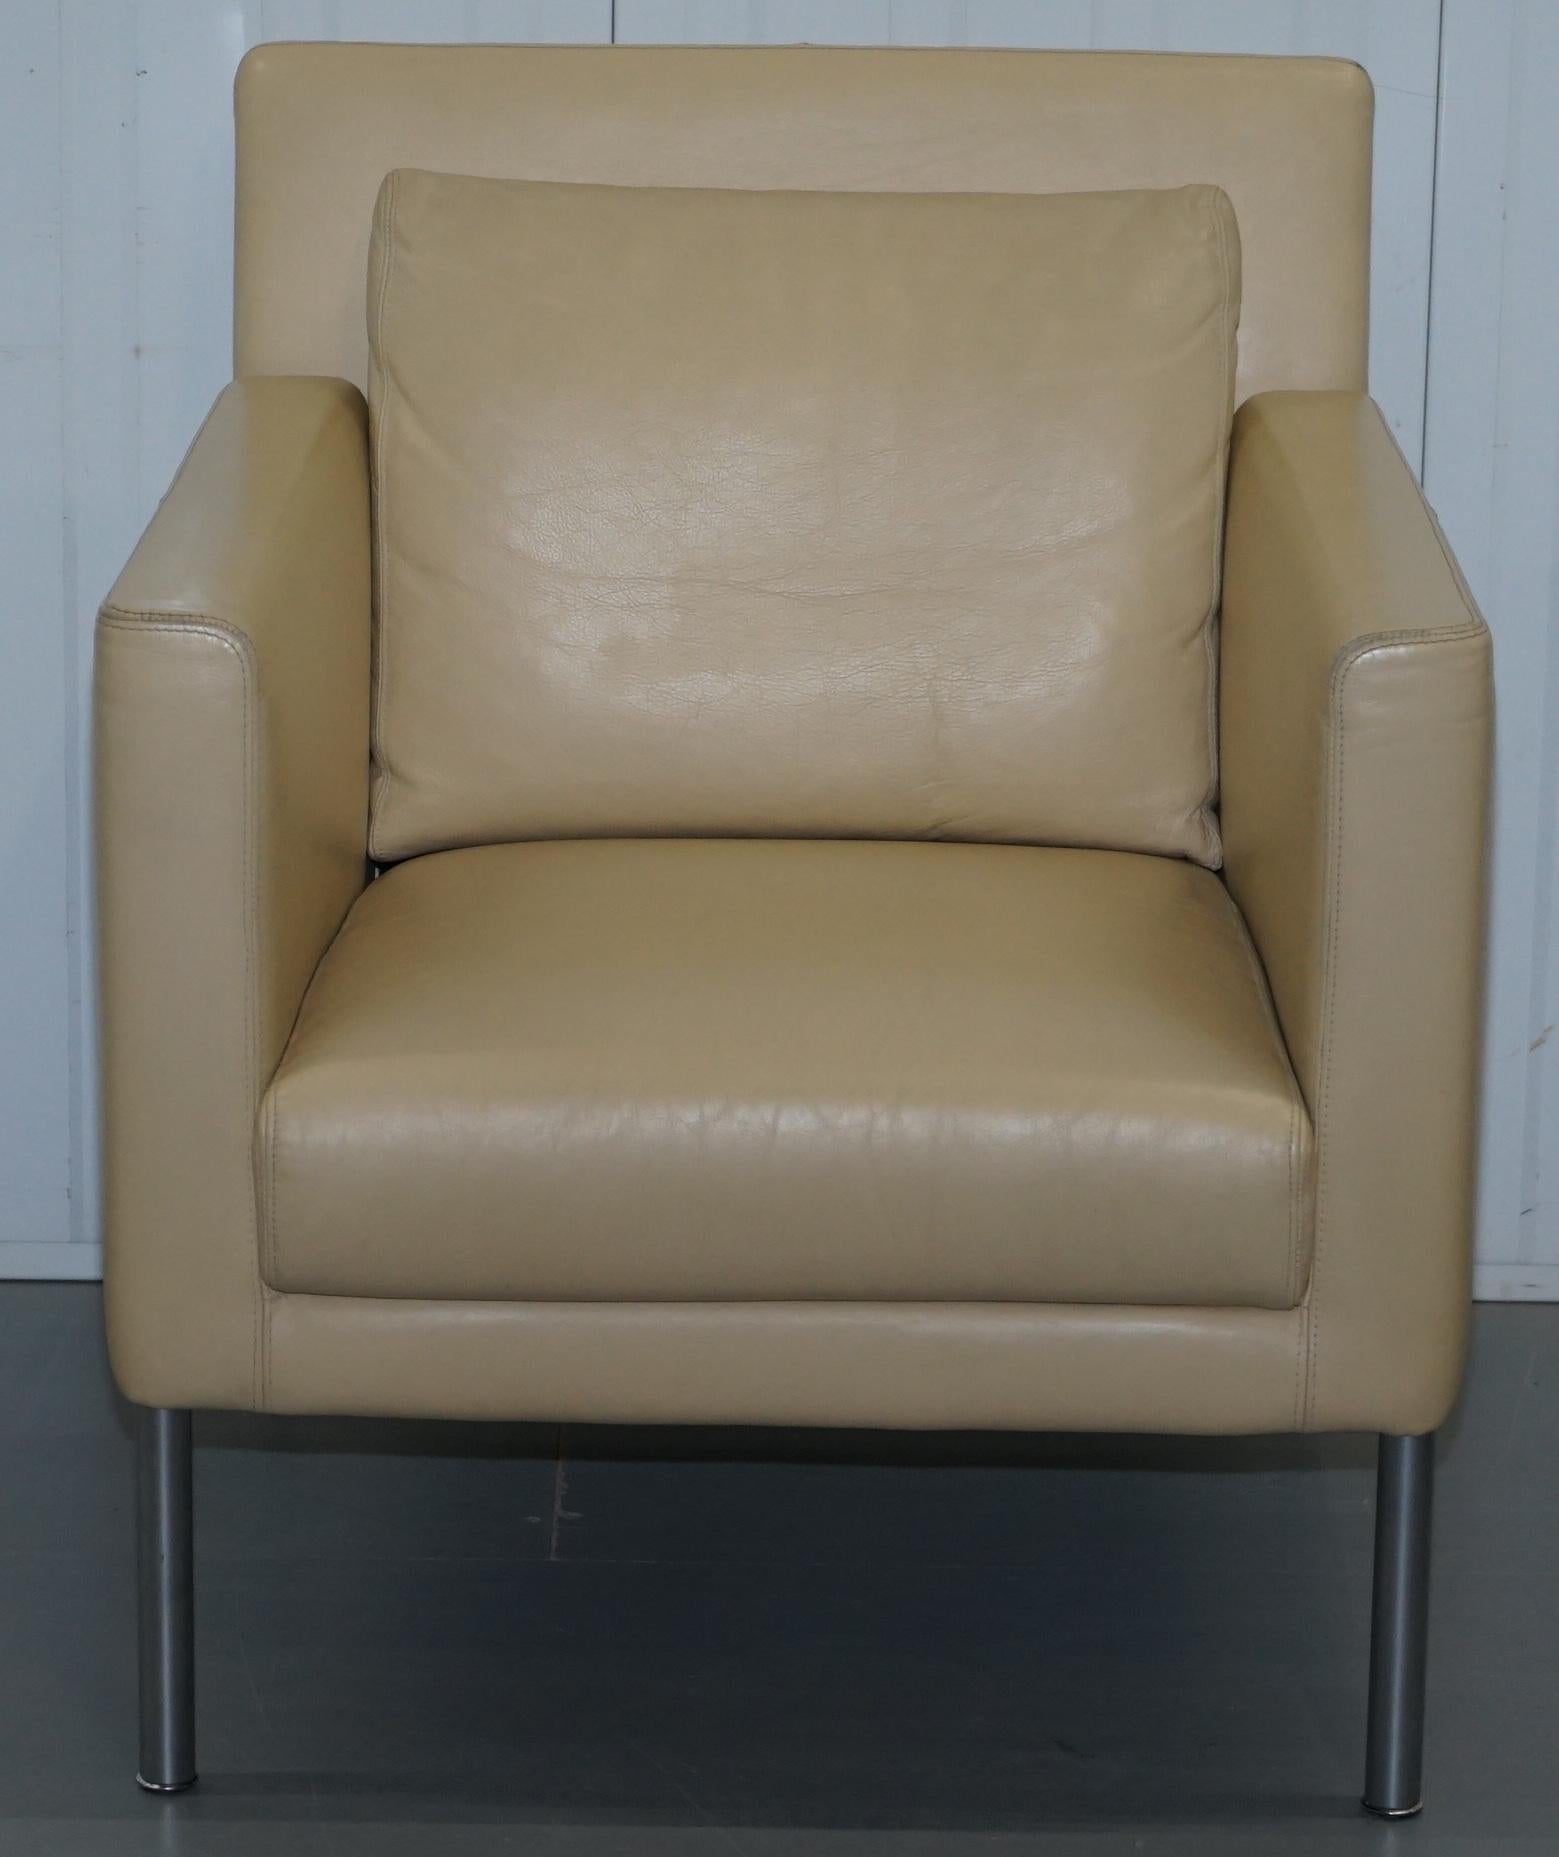 arm chairs for sale turquoise chair sashes pair of walter knoll jason 391 cream leather contemporary armchairs mid century modern